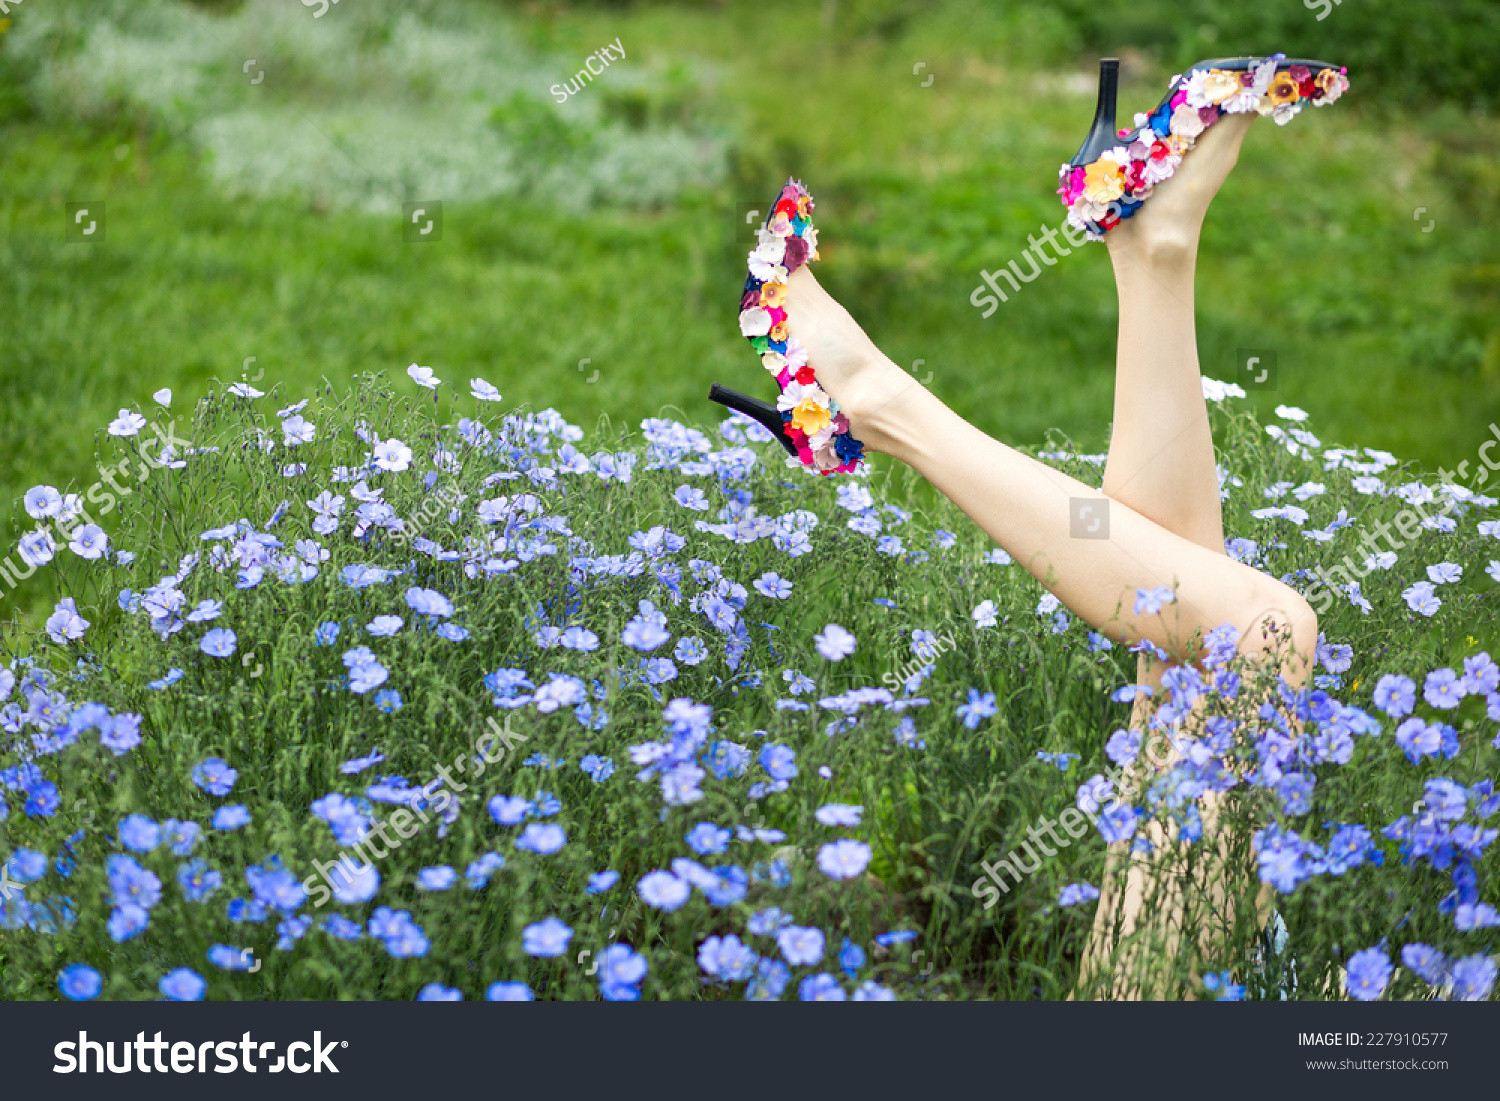 Playful Young Woman Legs On Flower Stock Photo Download Now